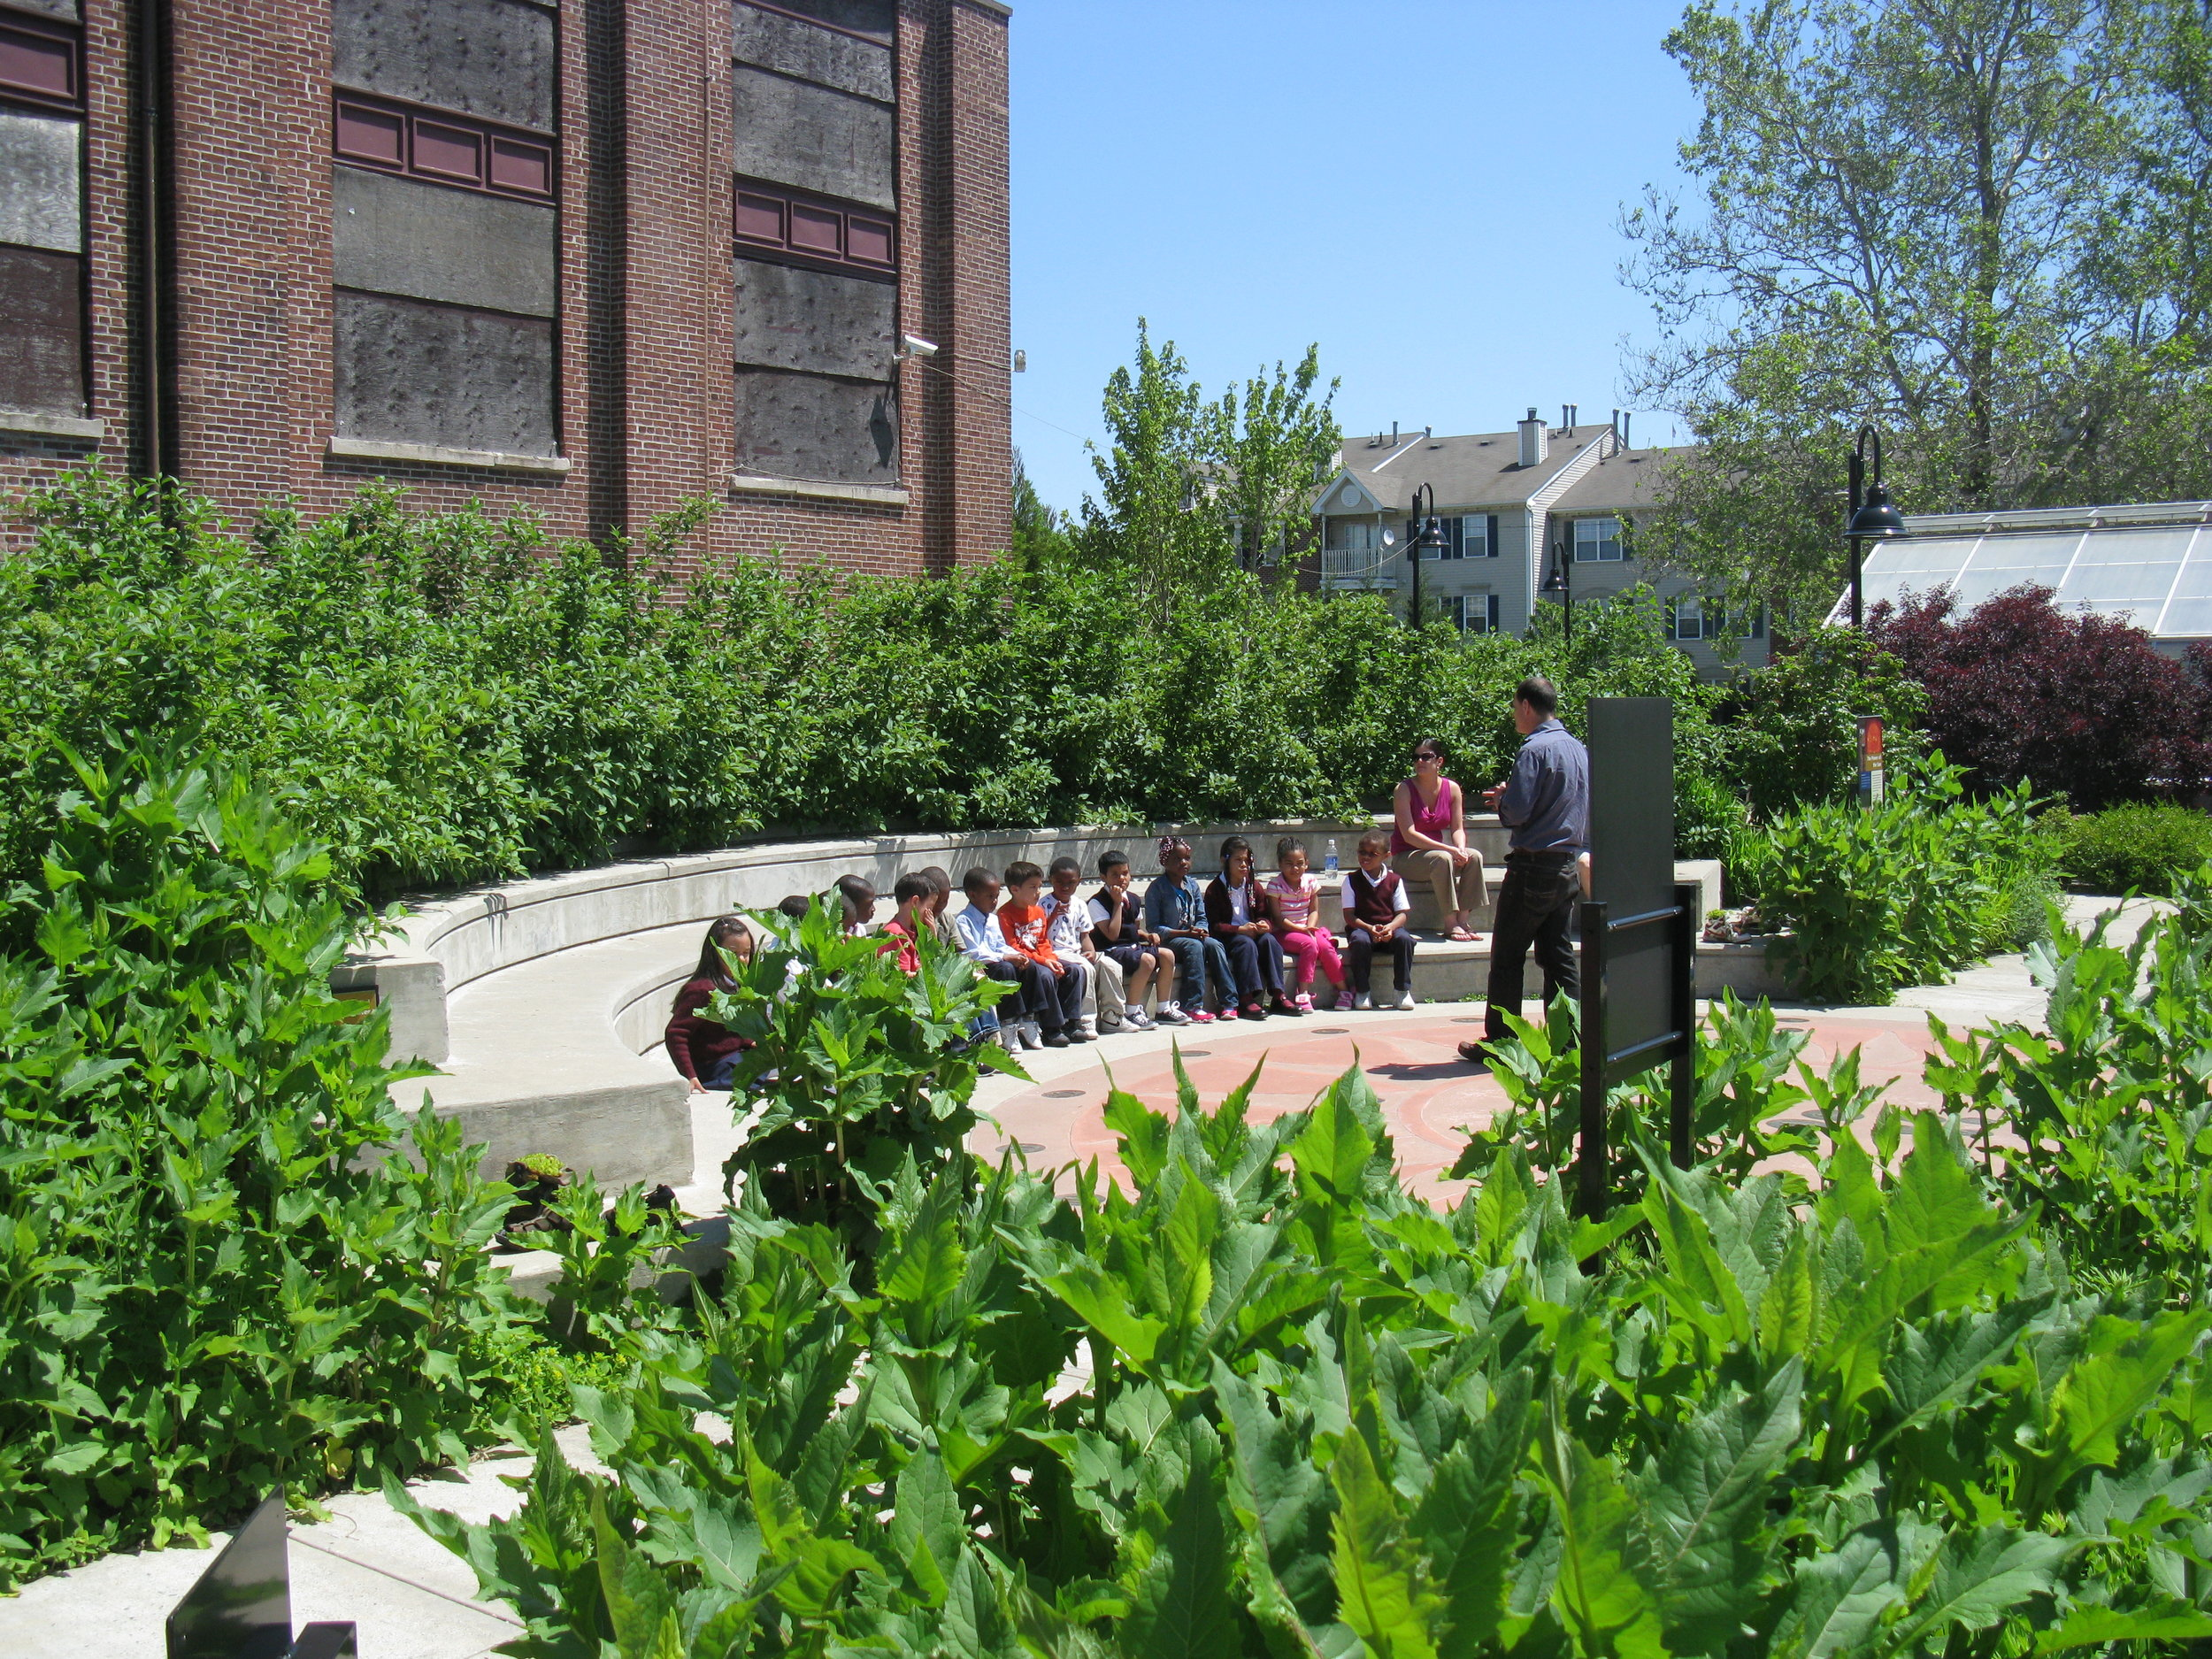 outdoor learning center -